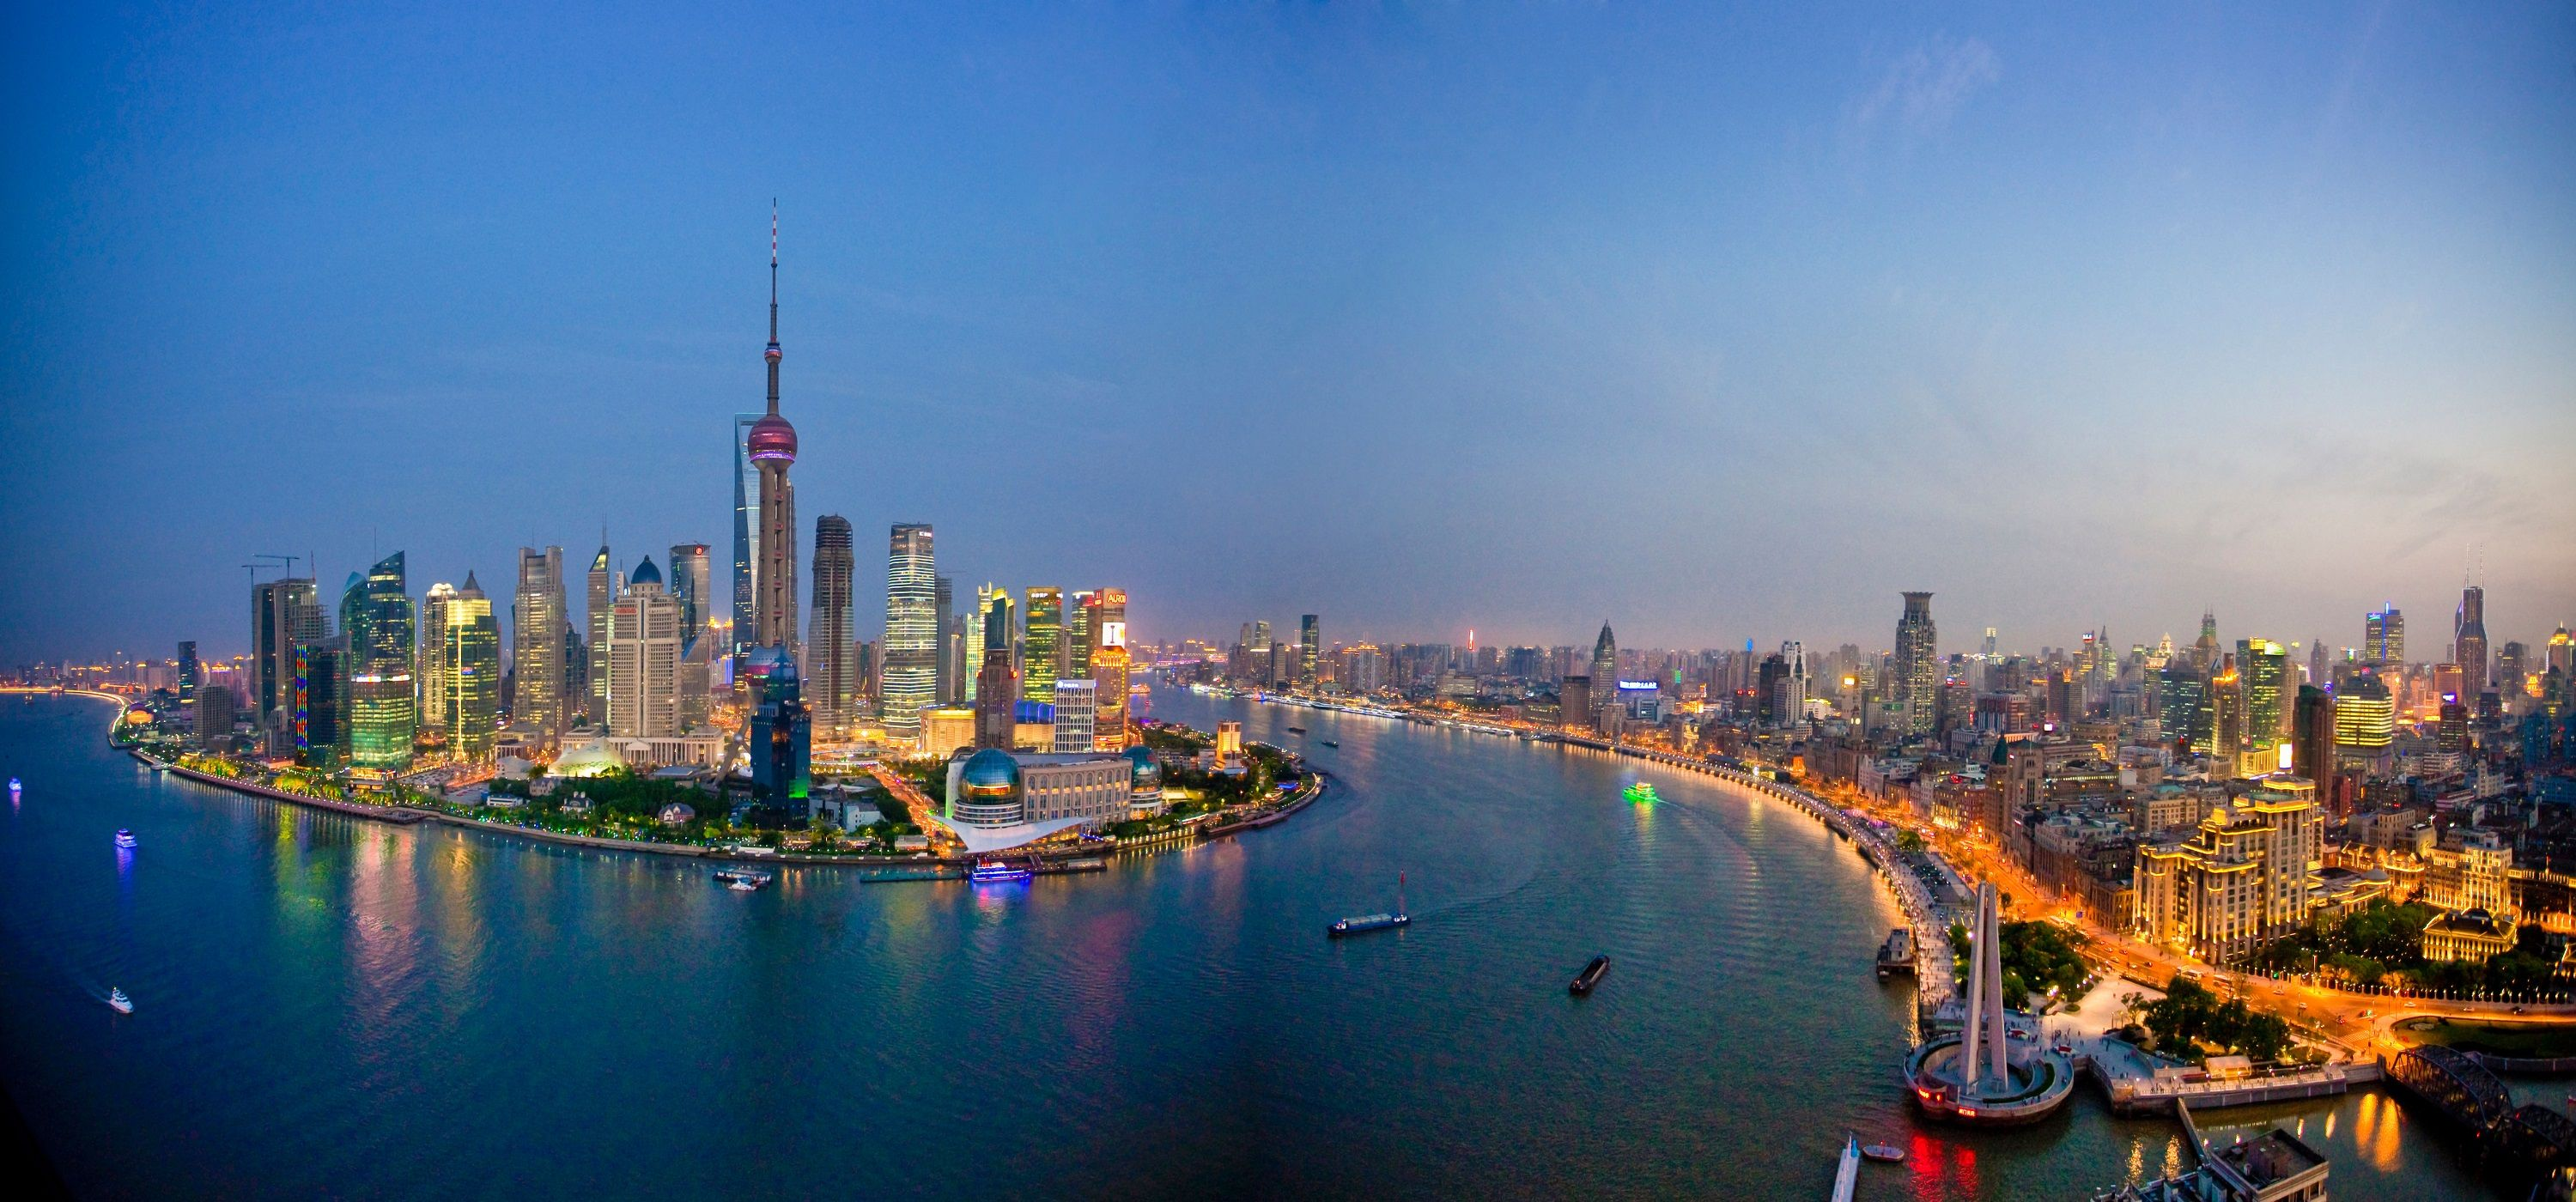 The 10 Richest Cities in China